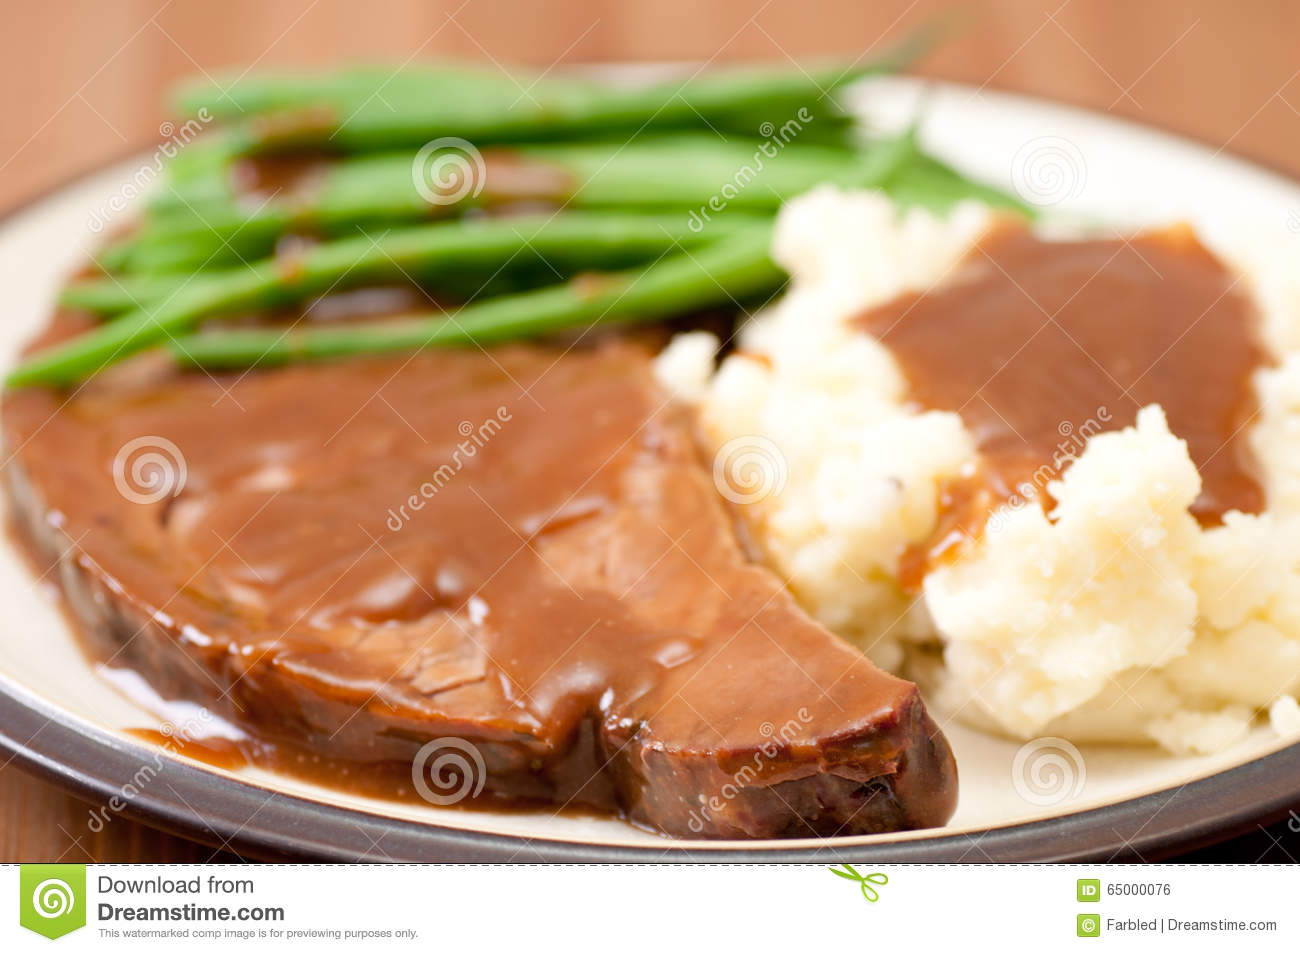 Fresh Roast Beef With Mashed Potatoes Stock Photo - Image ...